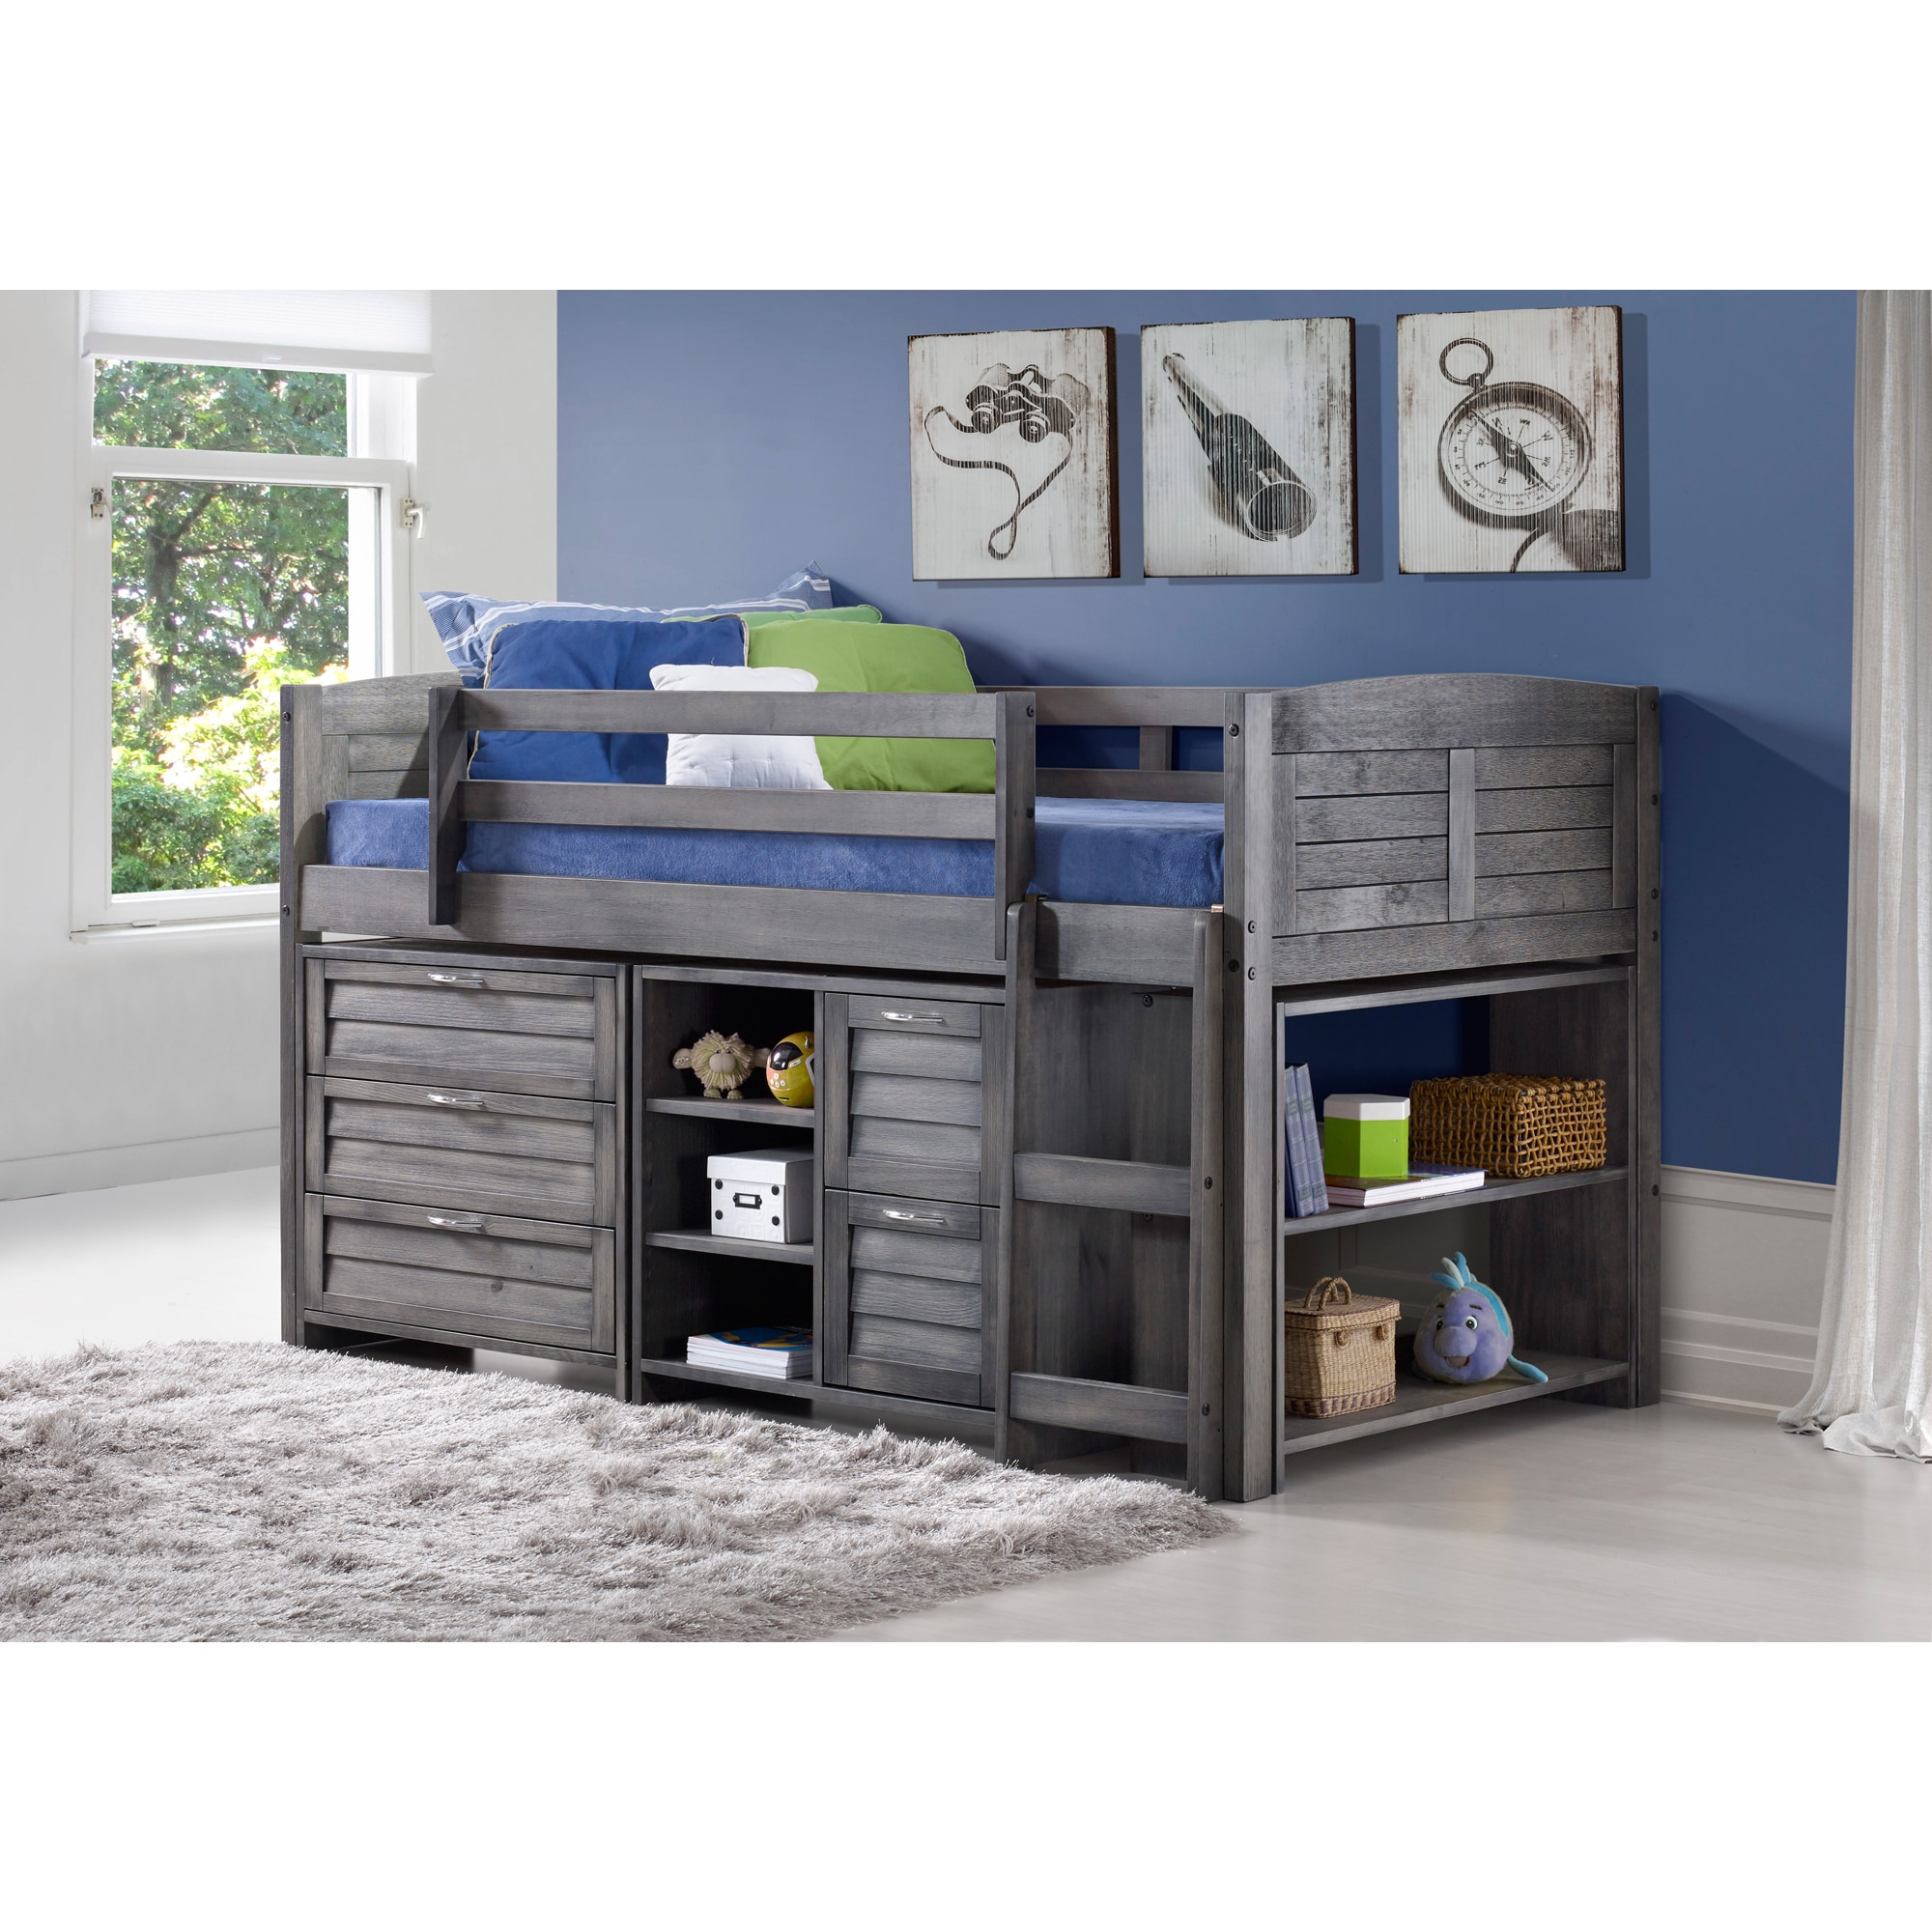 Donco Kids  Grey Wood Twin Louver Low Loft Bed with Chests, Shelves, and Bookcase